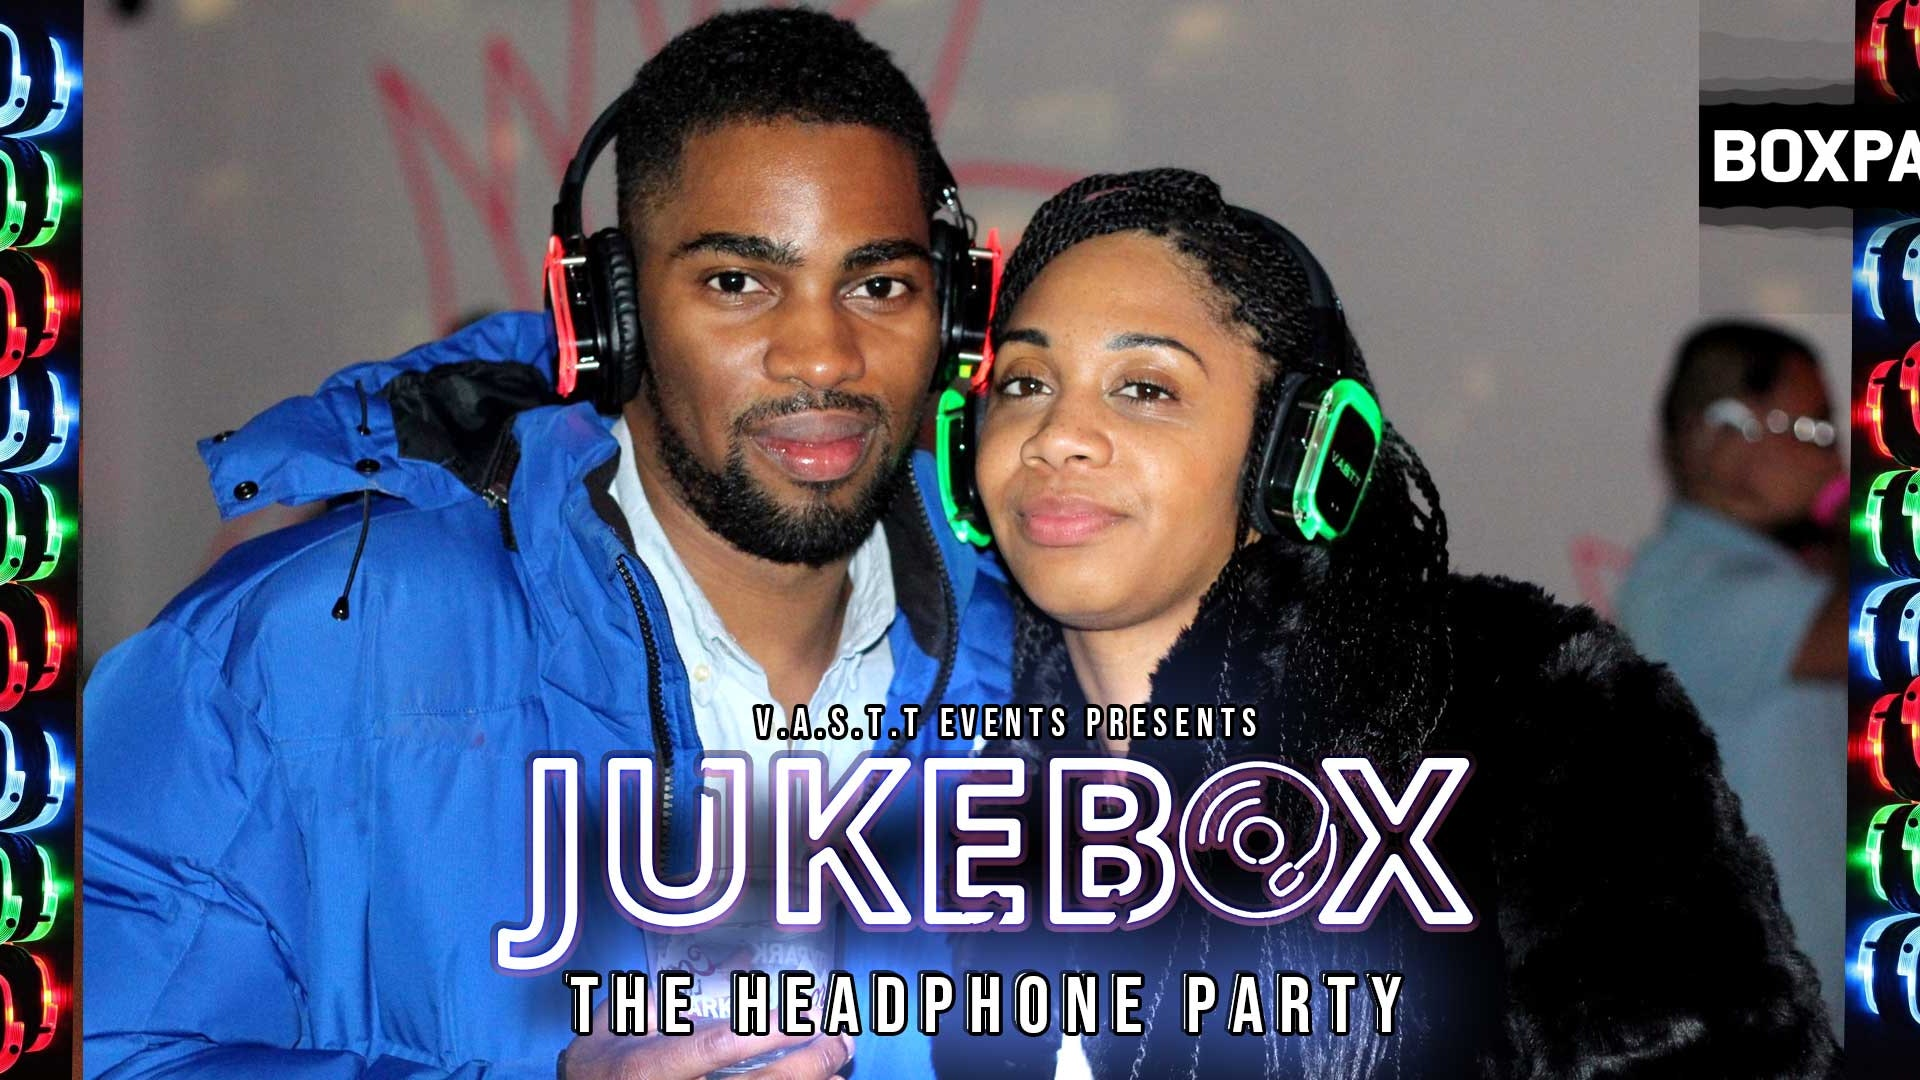 Jukebox- The Headphone Party@Boxpark Croydon